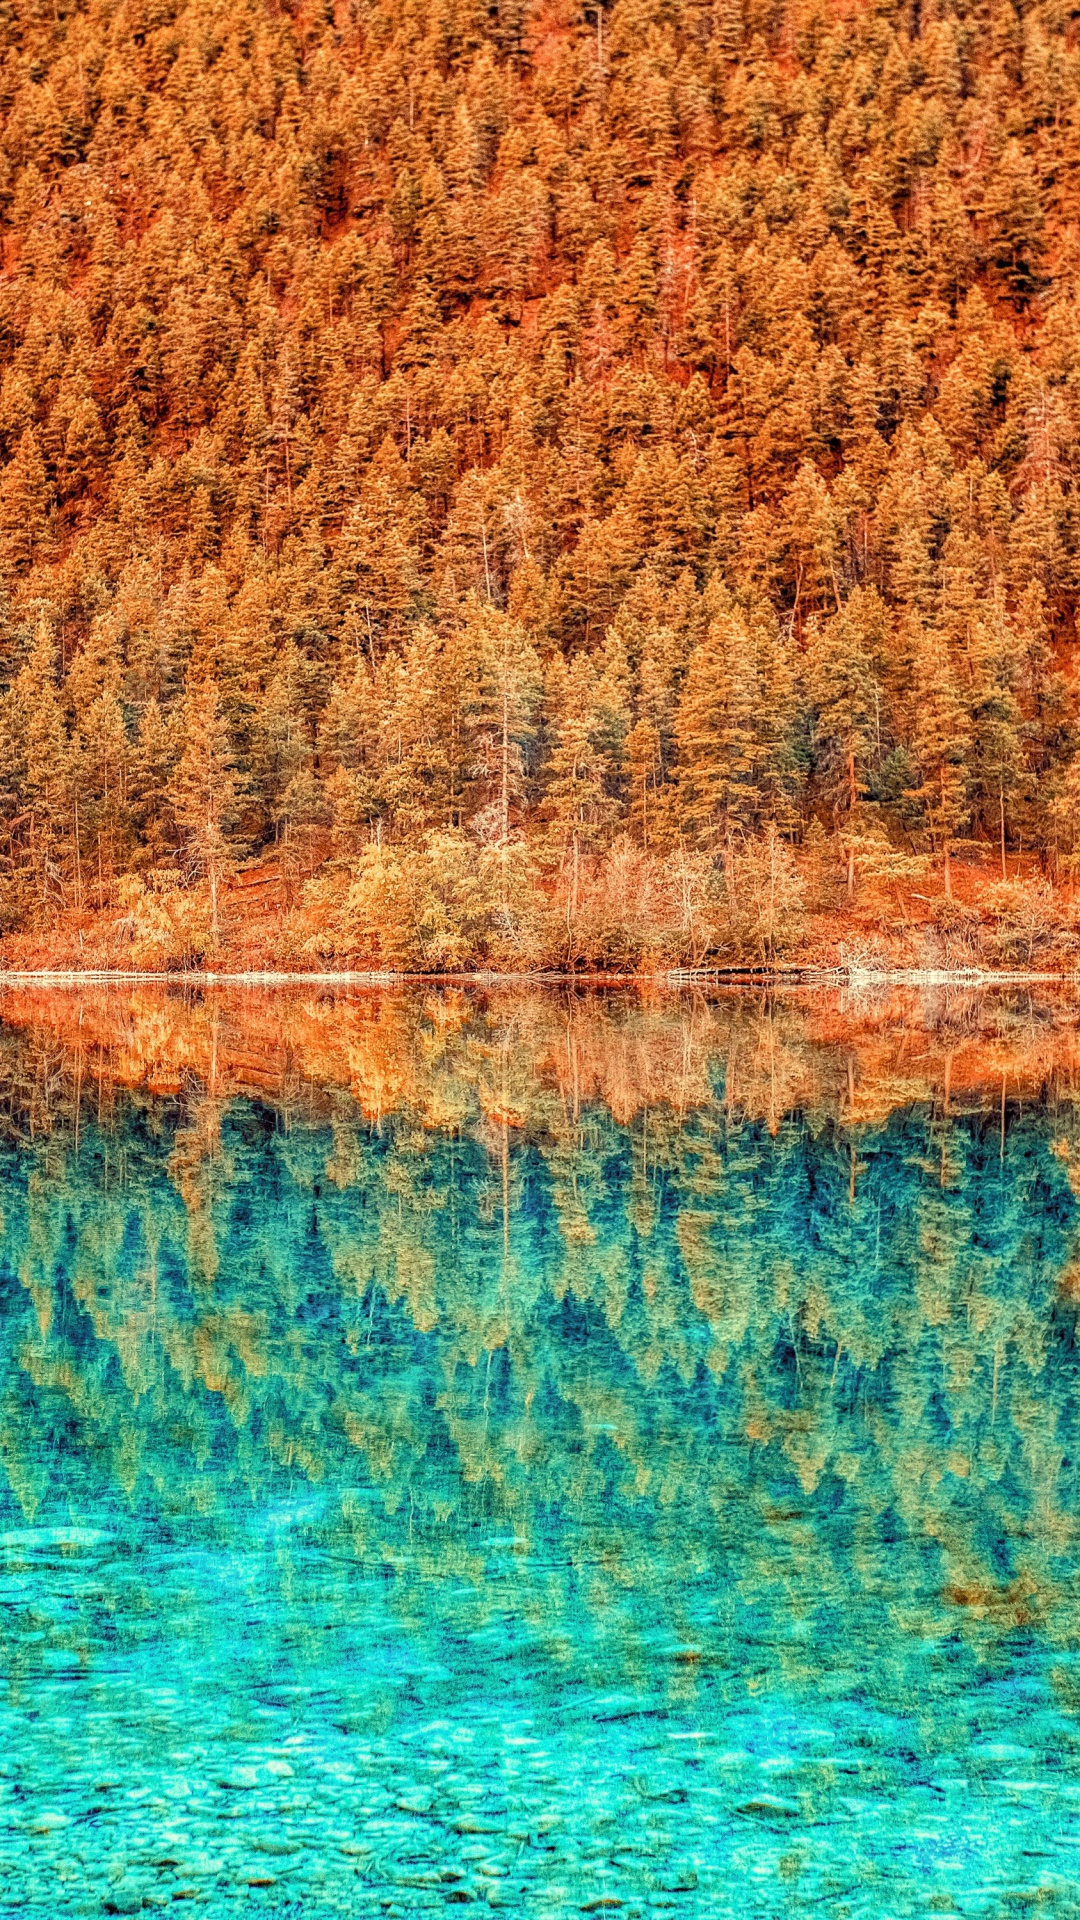 iPhone wallpaper 3wallpapers lake trees reflection 3Wallpapers : notre sélection de fonds décran du 02/10/2017